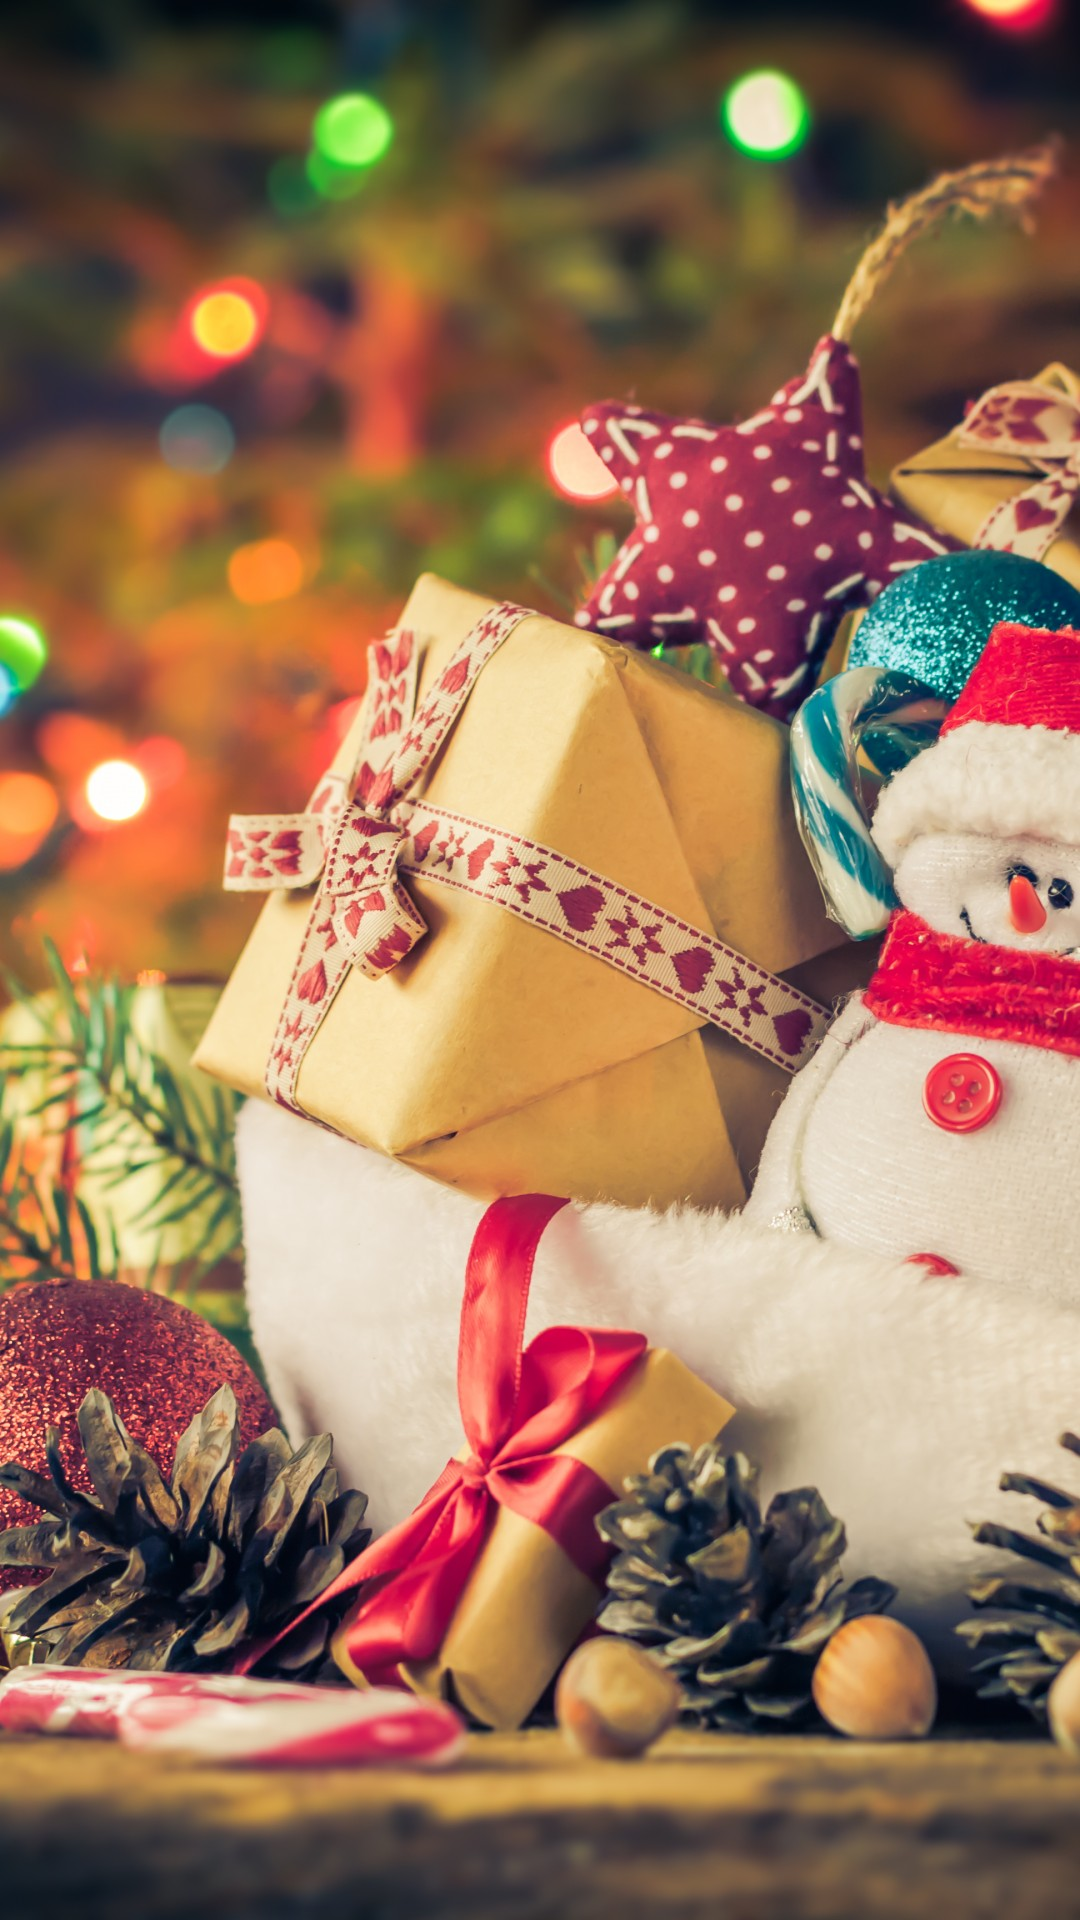 Wallpaper New Year Christmas Gifts Snowman 4k